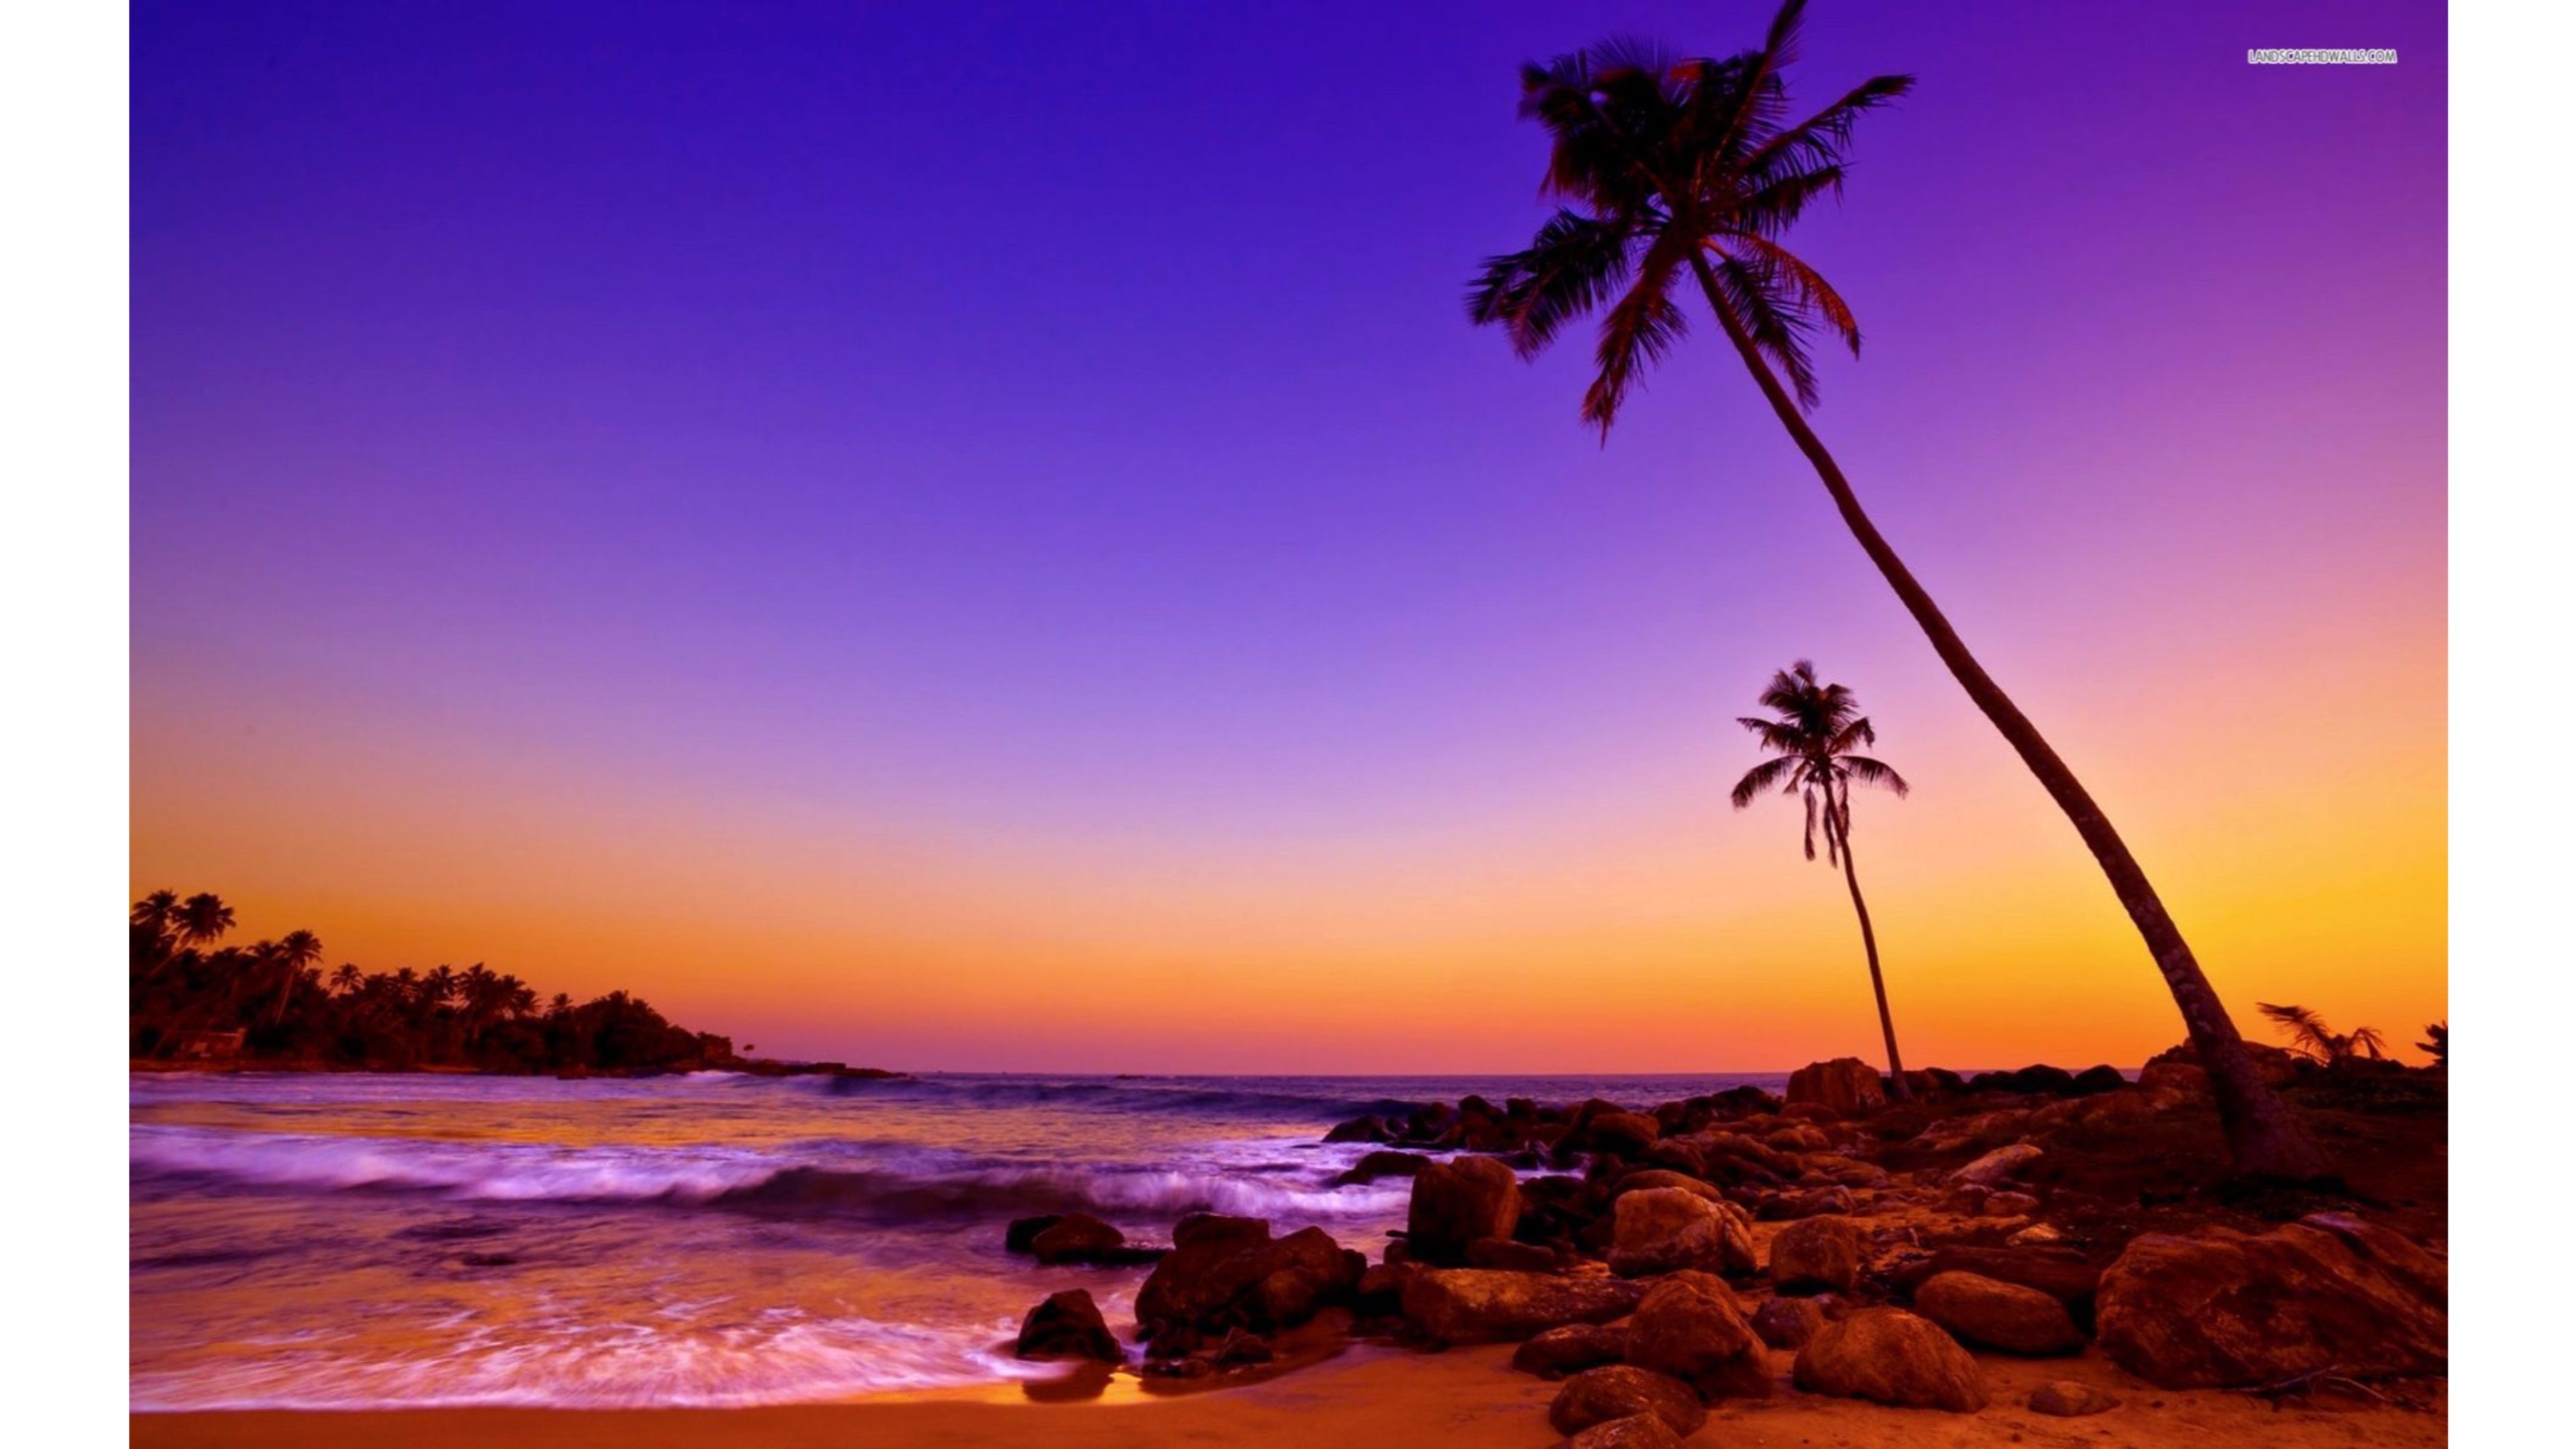 Caribbean Island Sunset Images amp Pictures   Becuo 3840x2160